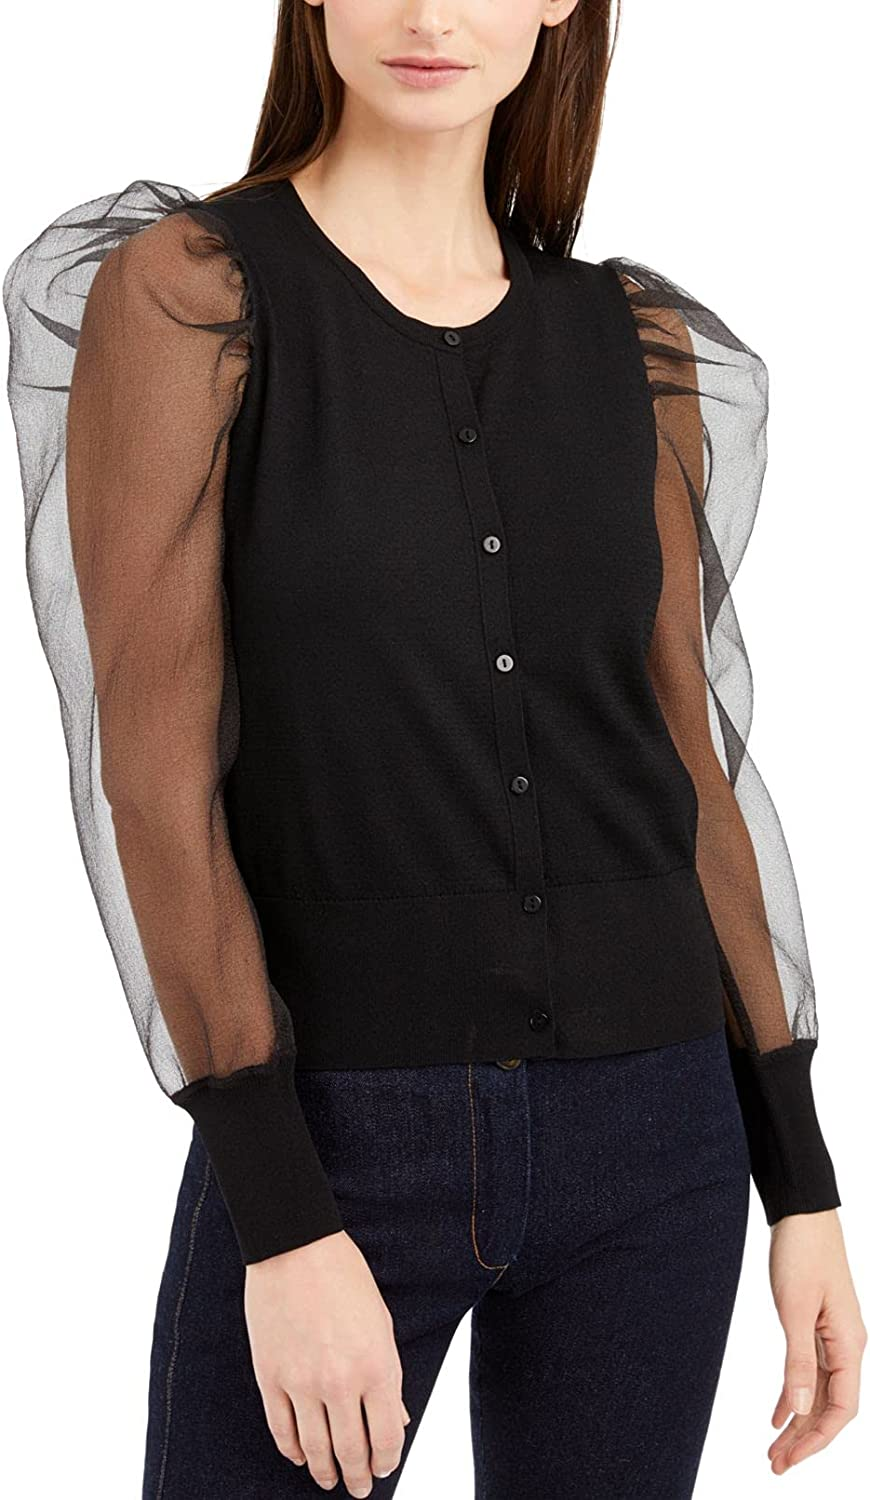 INC Womens Sheer Sleeves Button-Down Cardigan Sweater Black L